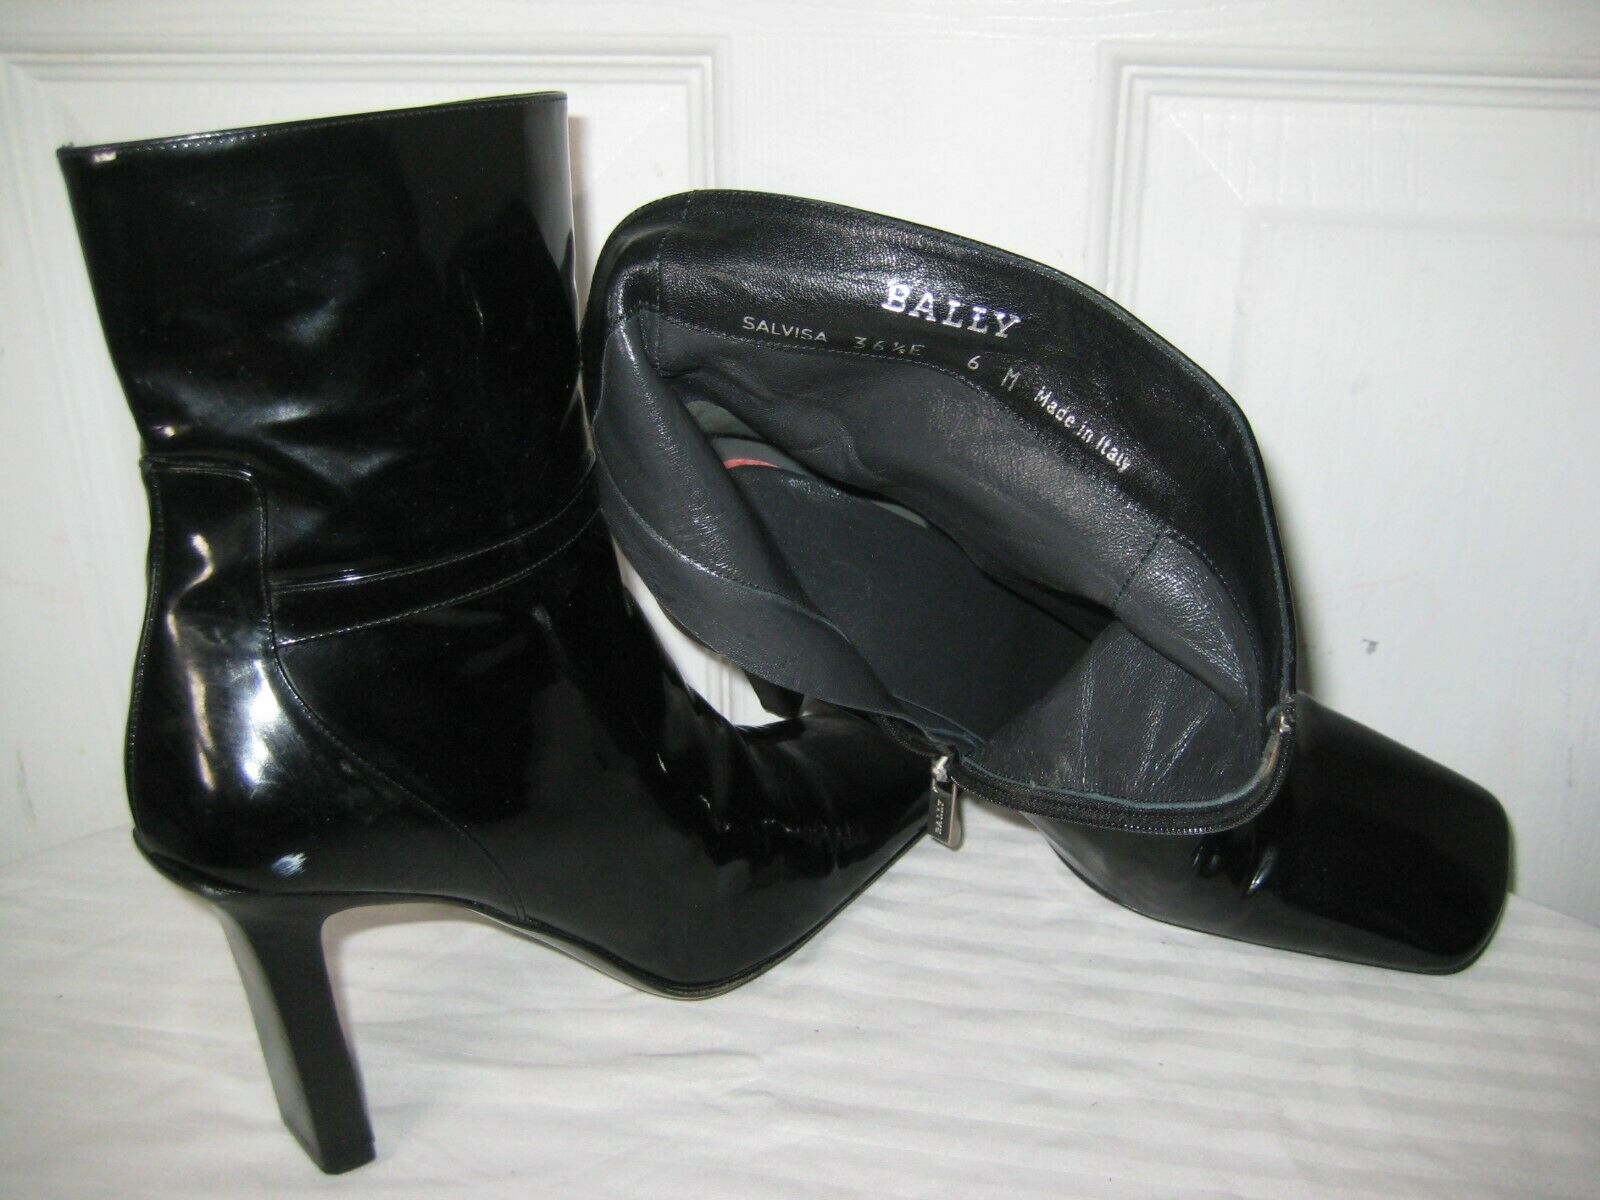 BALLY BALLY BALLY Black Patent Leather Ankle Boots shoes Women's Sz 36.5   6 Made In ITALY.. 9209bc